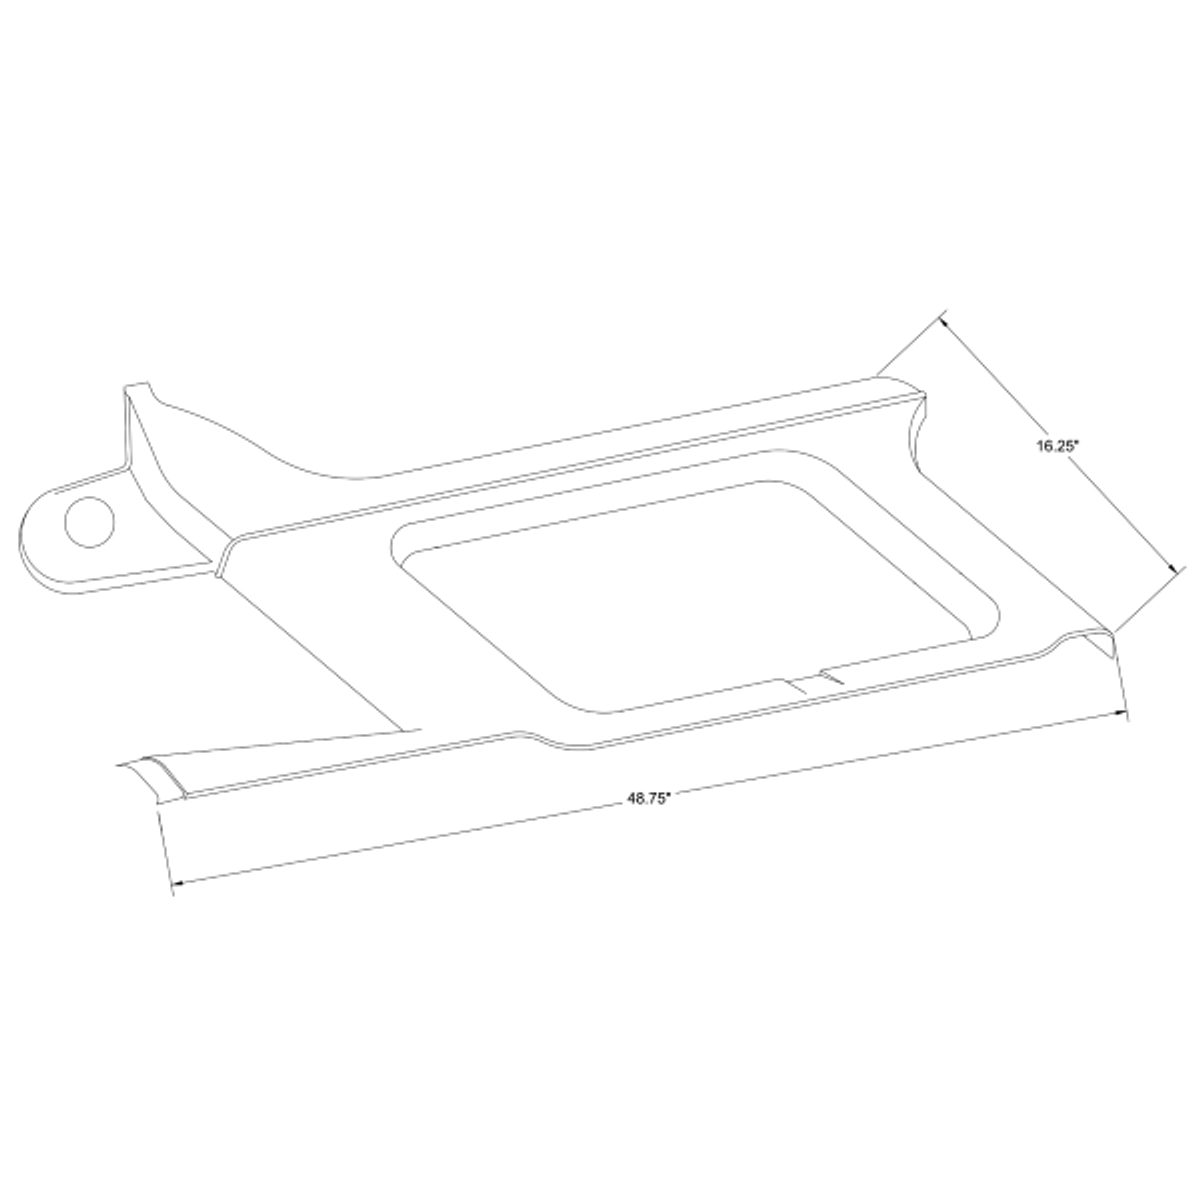 Forward Openable Window Moulding, Cessna 206 part 1215105-2